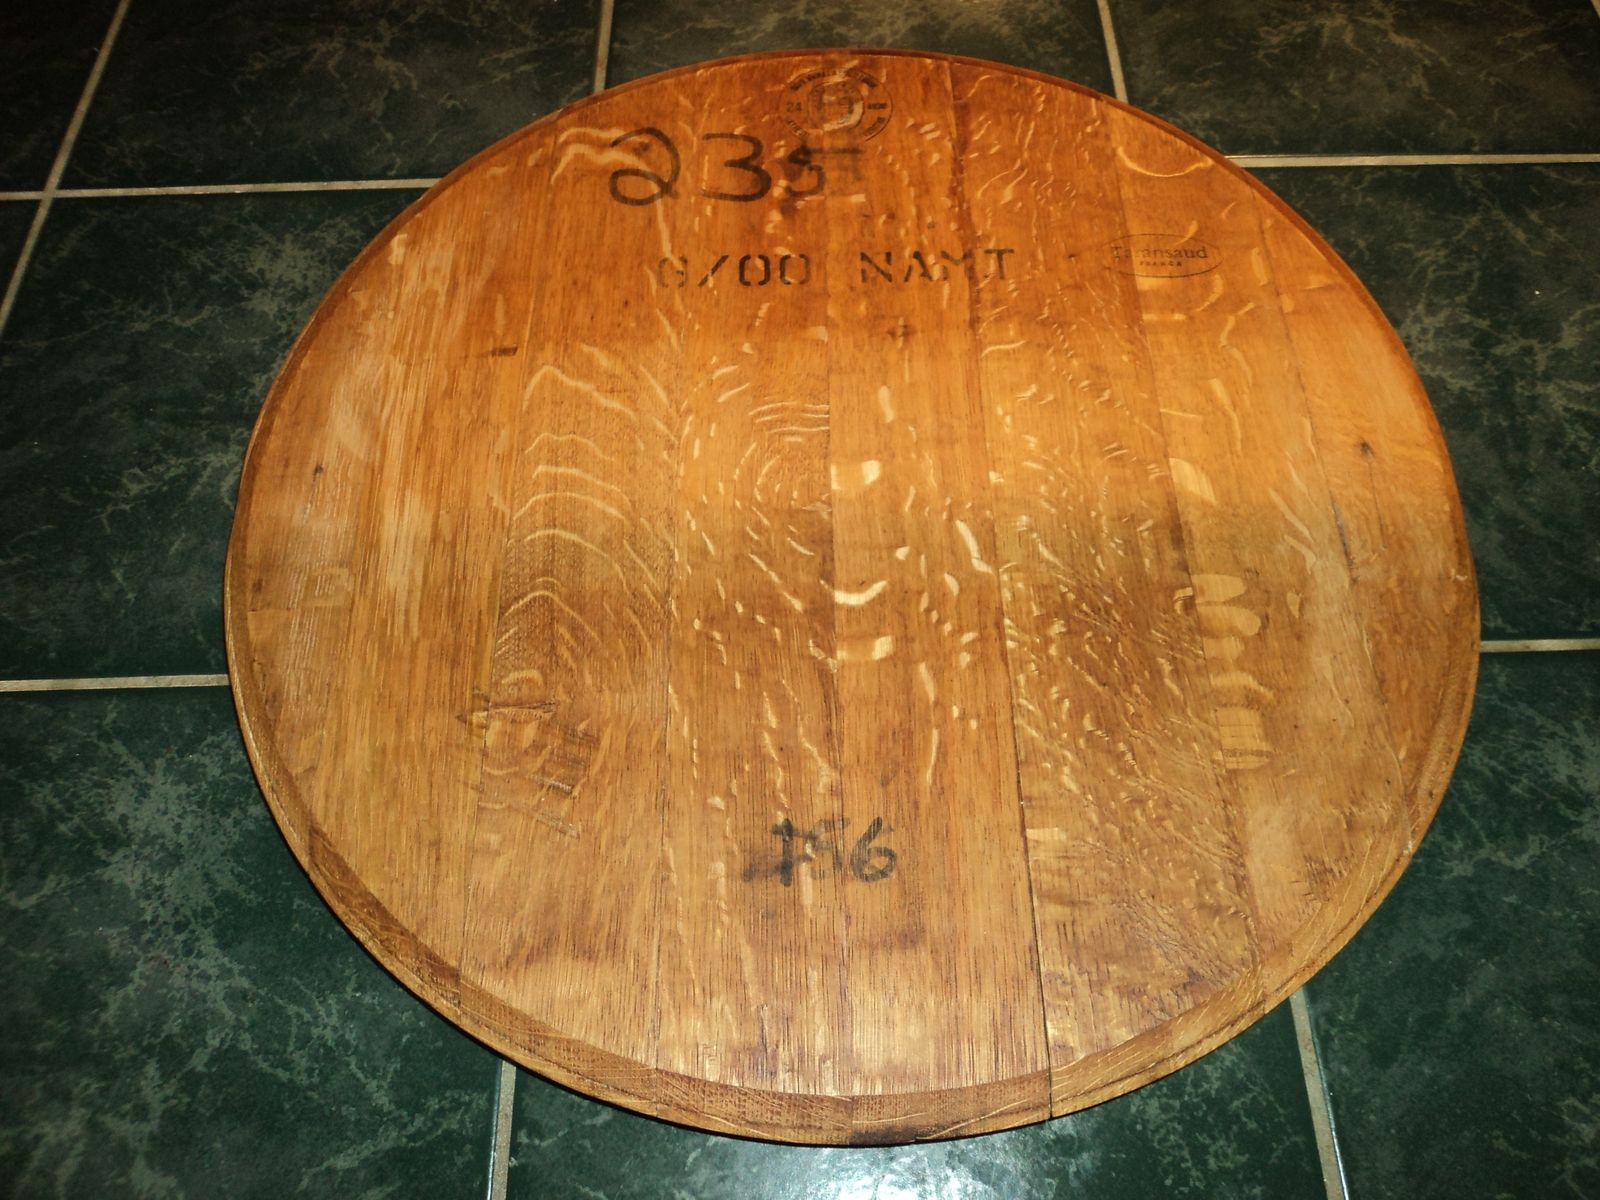 Dazzling wine barrel lazy susan for furniture accessories ideas with personalized wine barrel lazy susan